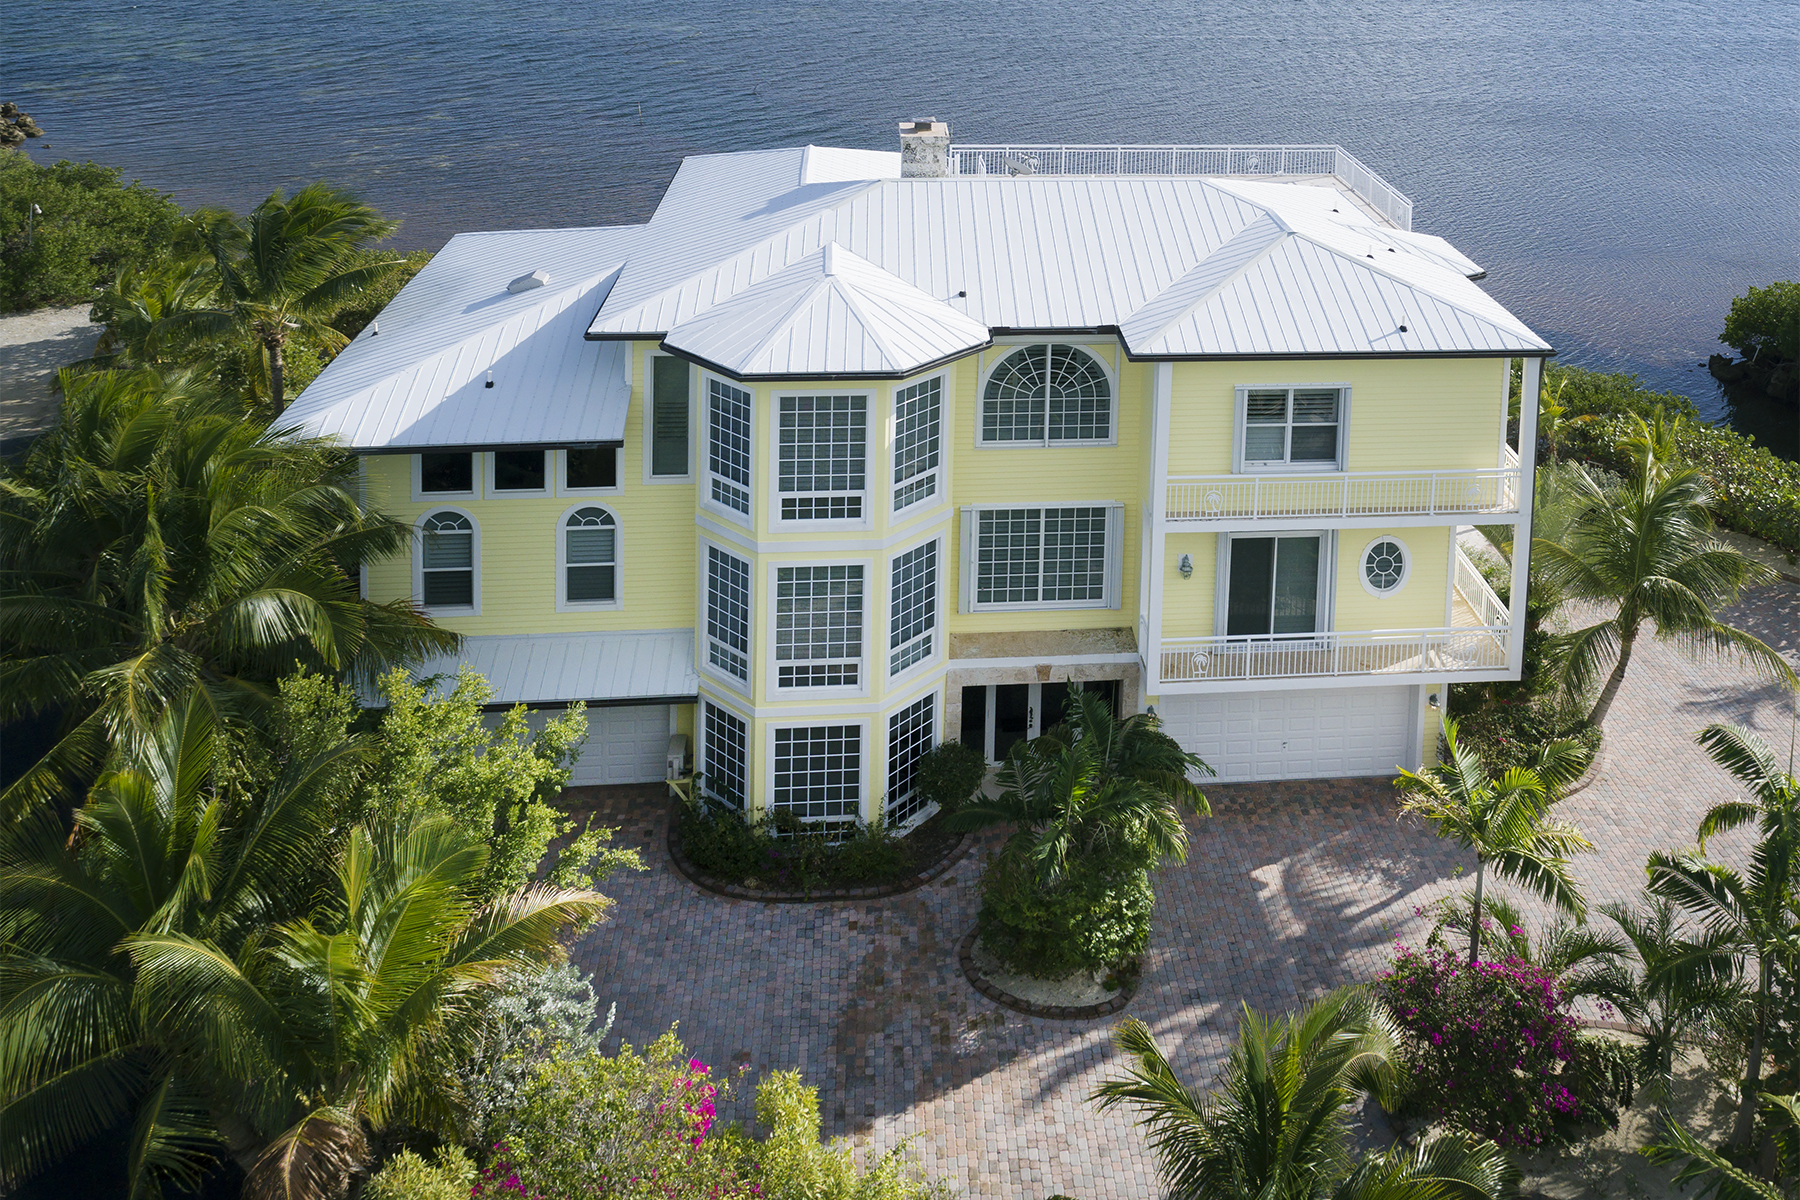 Villa per Vendita alle ore Oceanfront Home with Guest House 97251 Overseas Highway North Side Key Largo, Florida, 33037 Stati Uniti